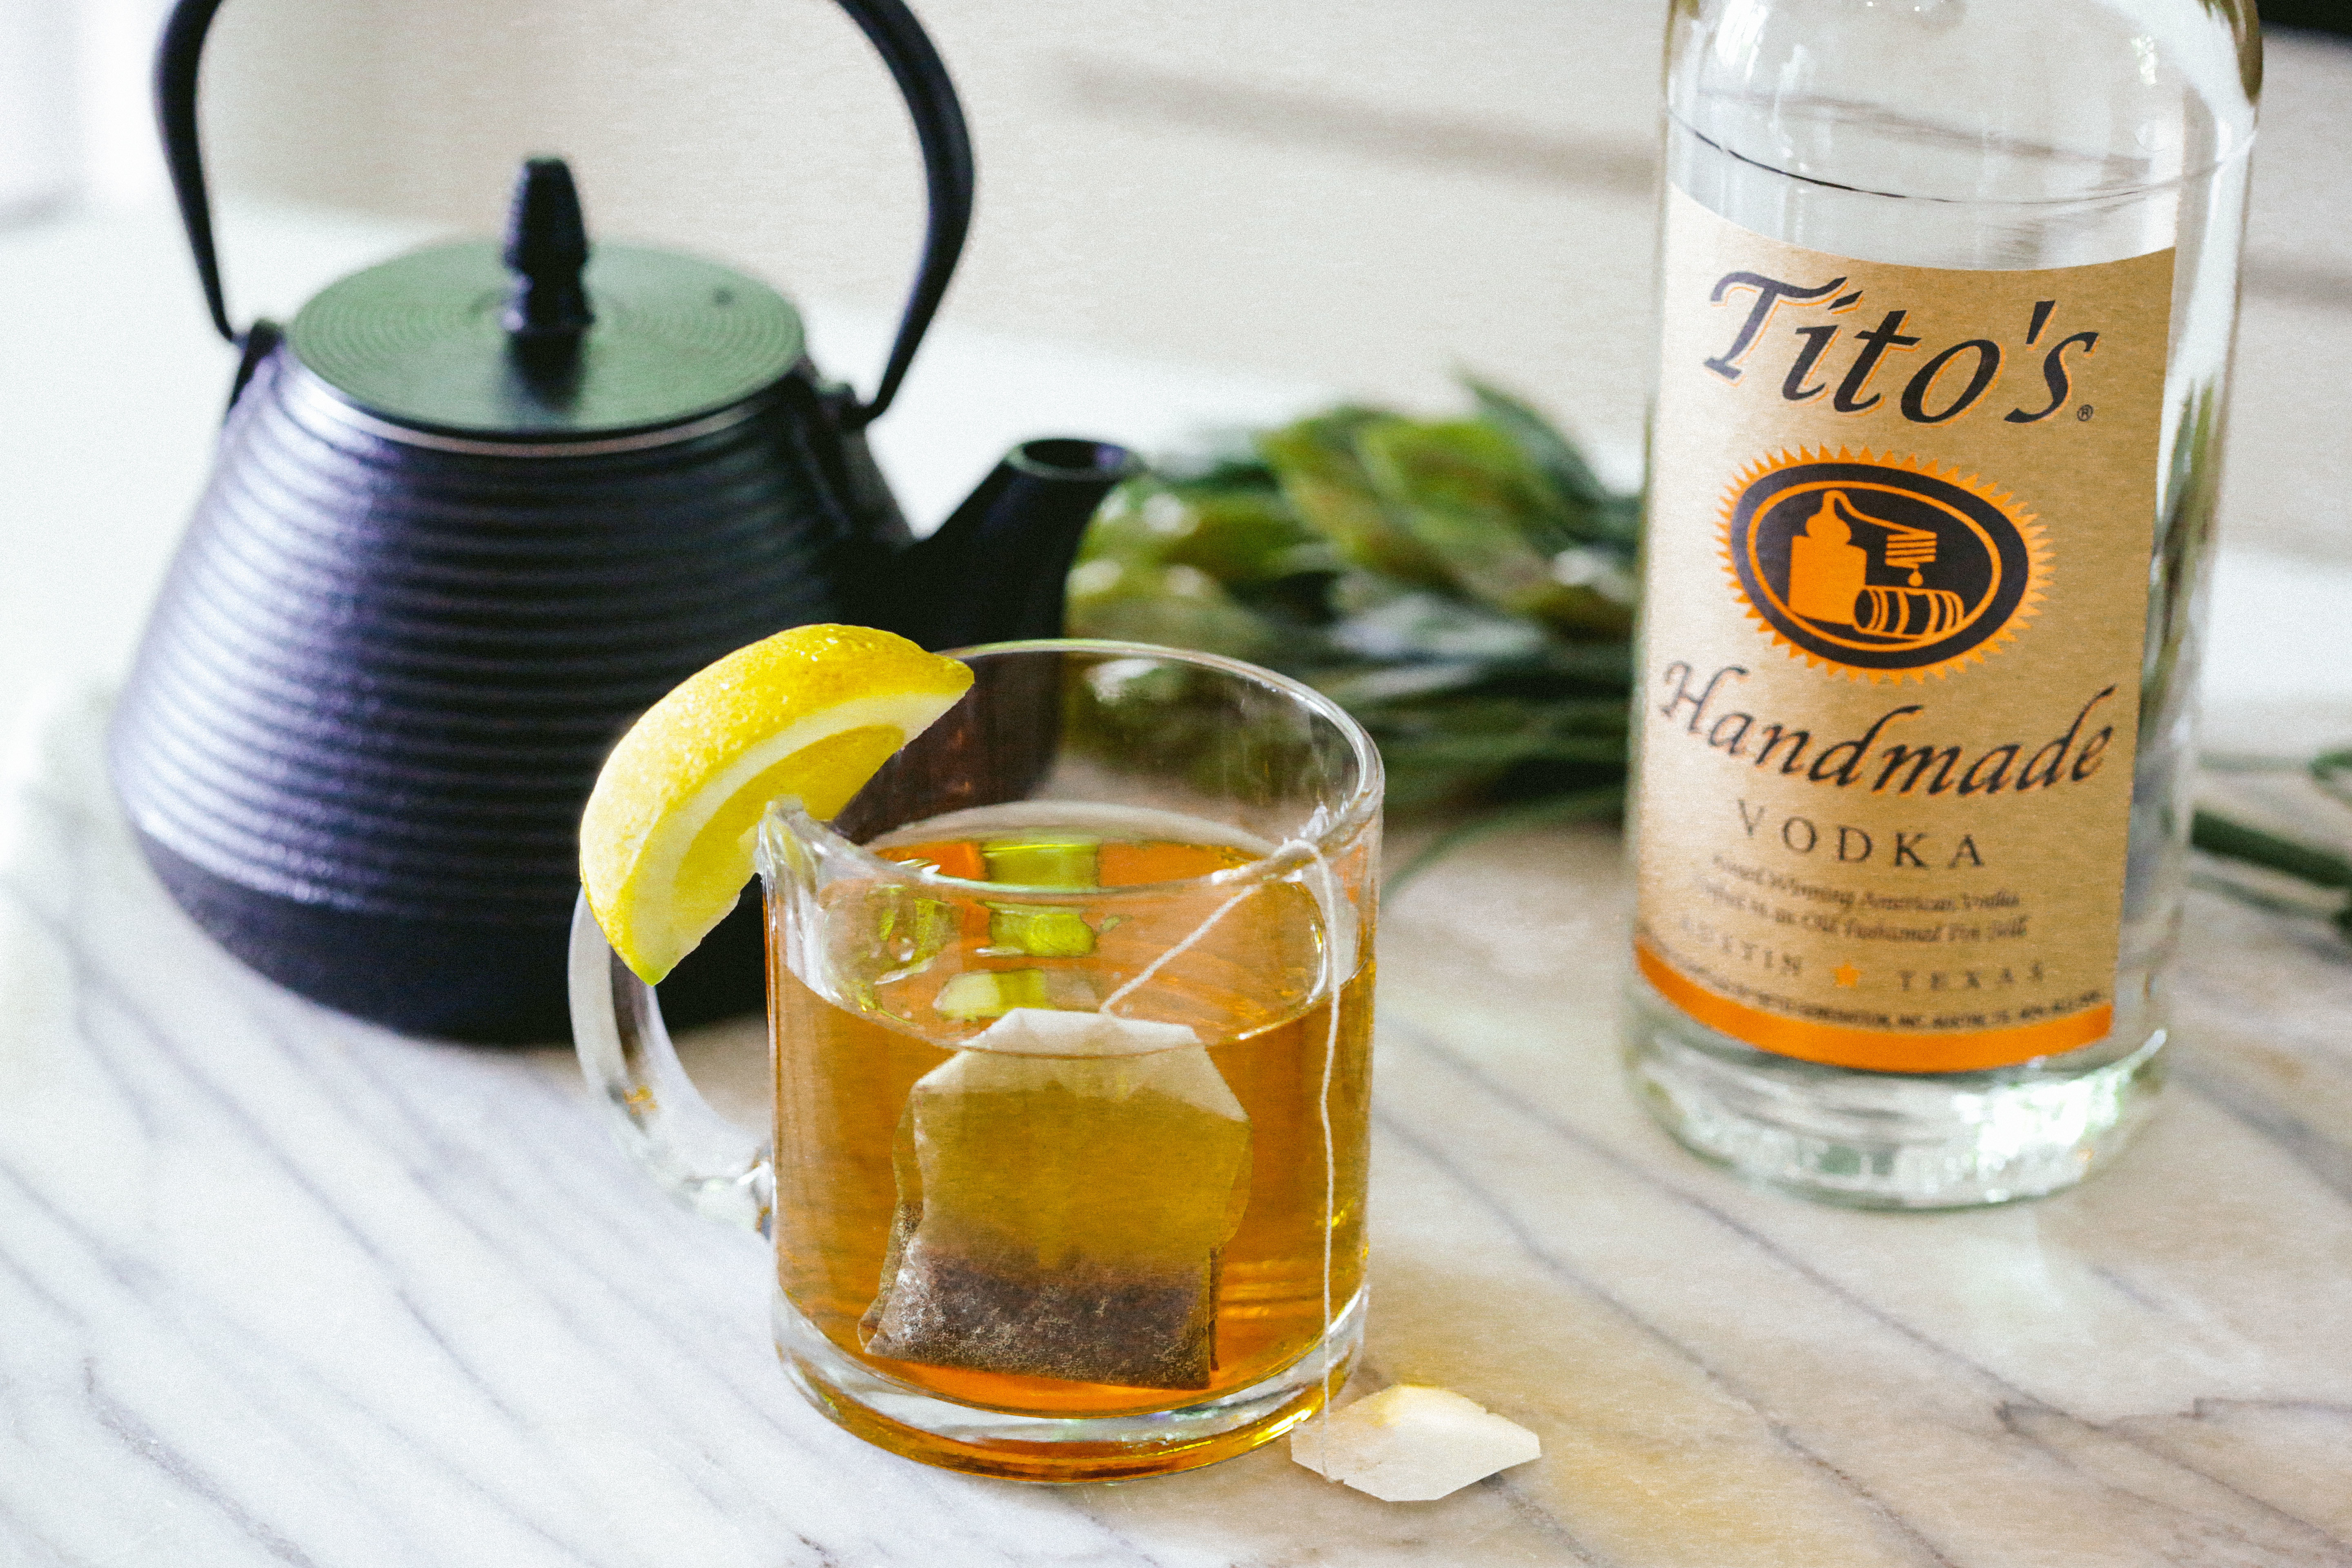 Tito's Toddy in a glass mug with a lemon garnish, a tea kettle and bottle of Tito's Handmade Vodka in the background